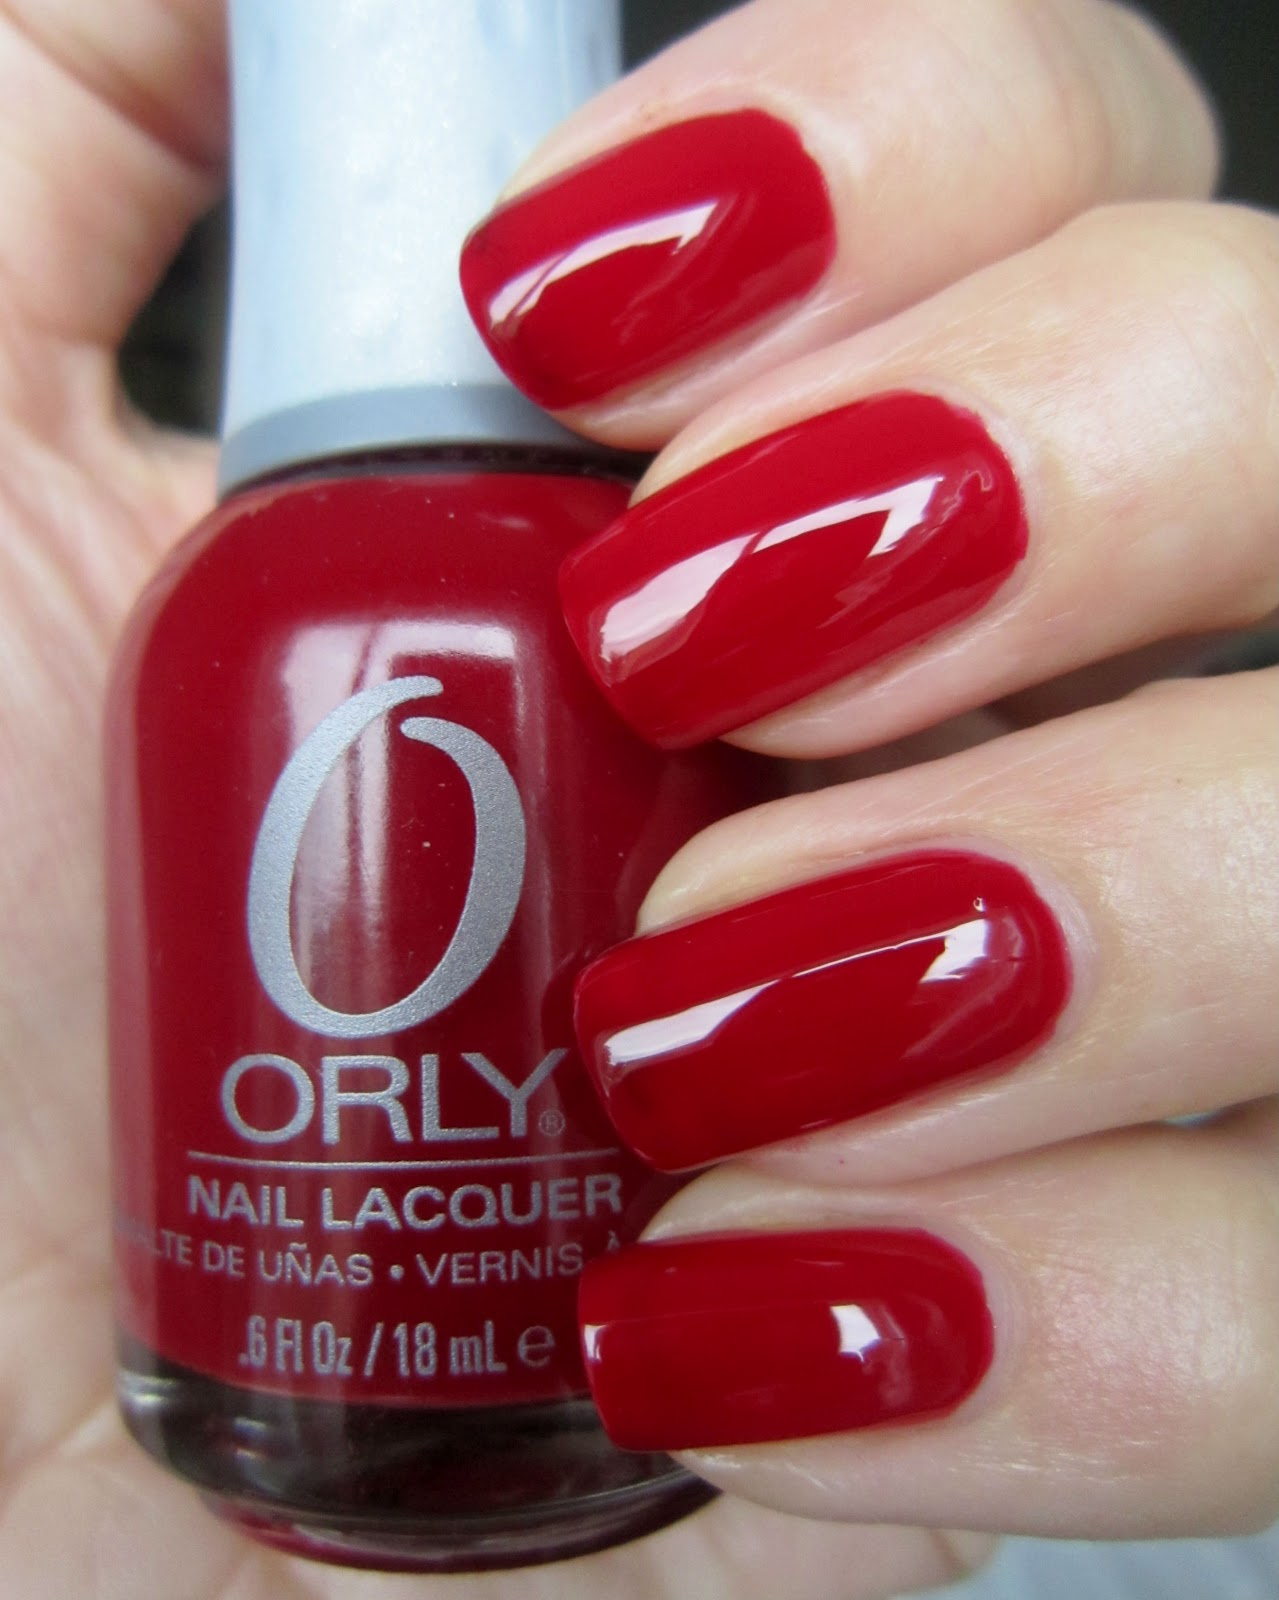 1000+ images about Orly on Pinterest | Orly nail polish ...